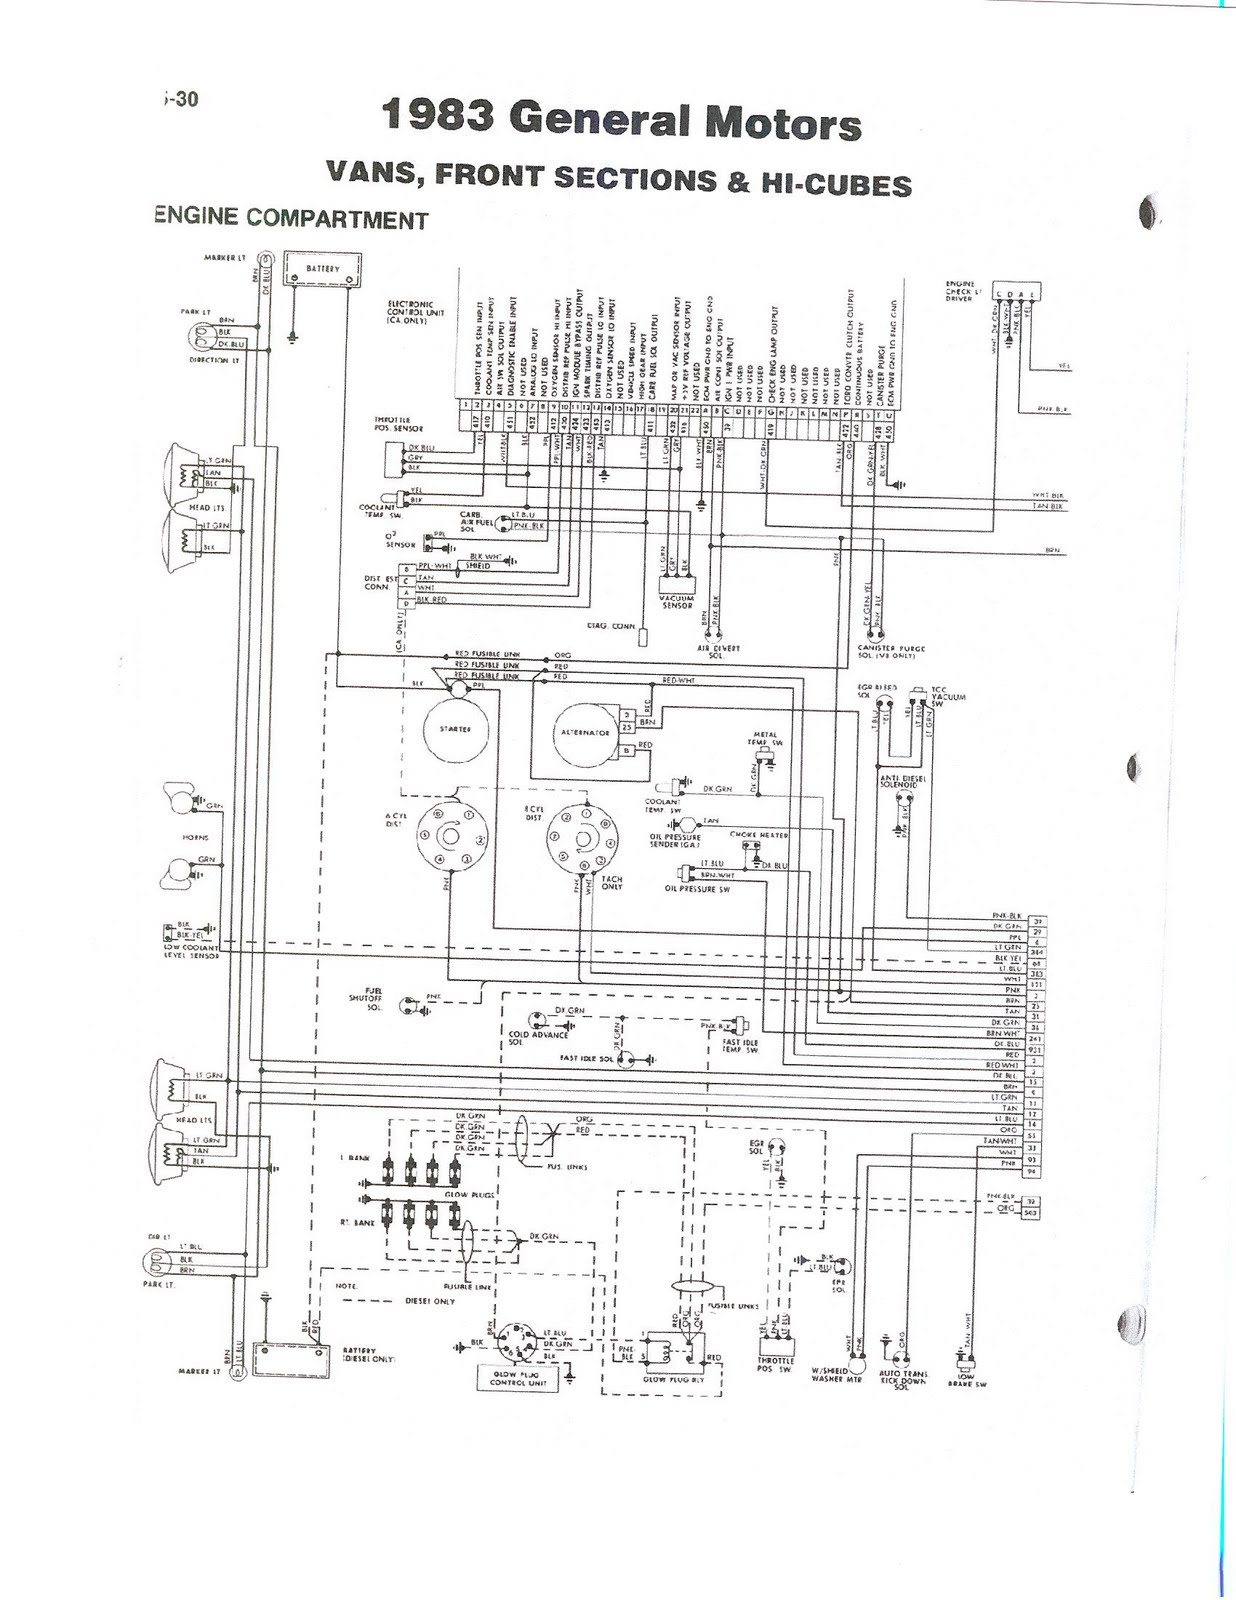 1985 pace arrow wiring diagram diagram base website wiring diagram -  venndiagramdefinition.itaseinaudi.it  diagram base website full edition